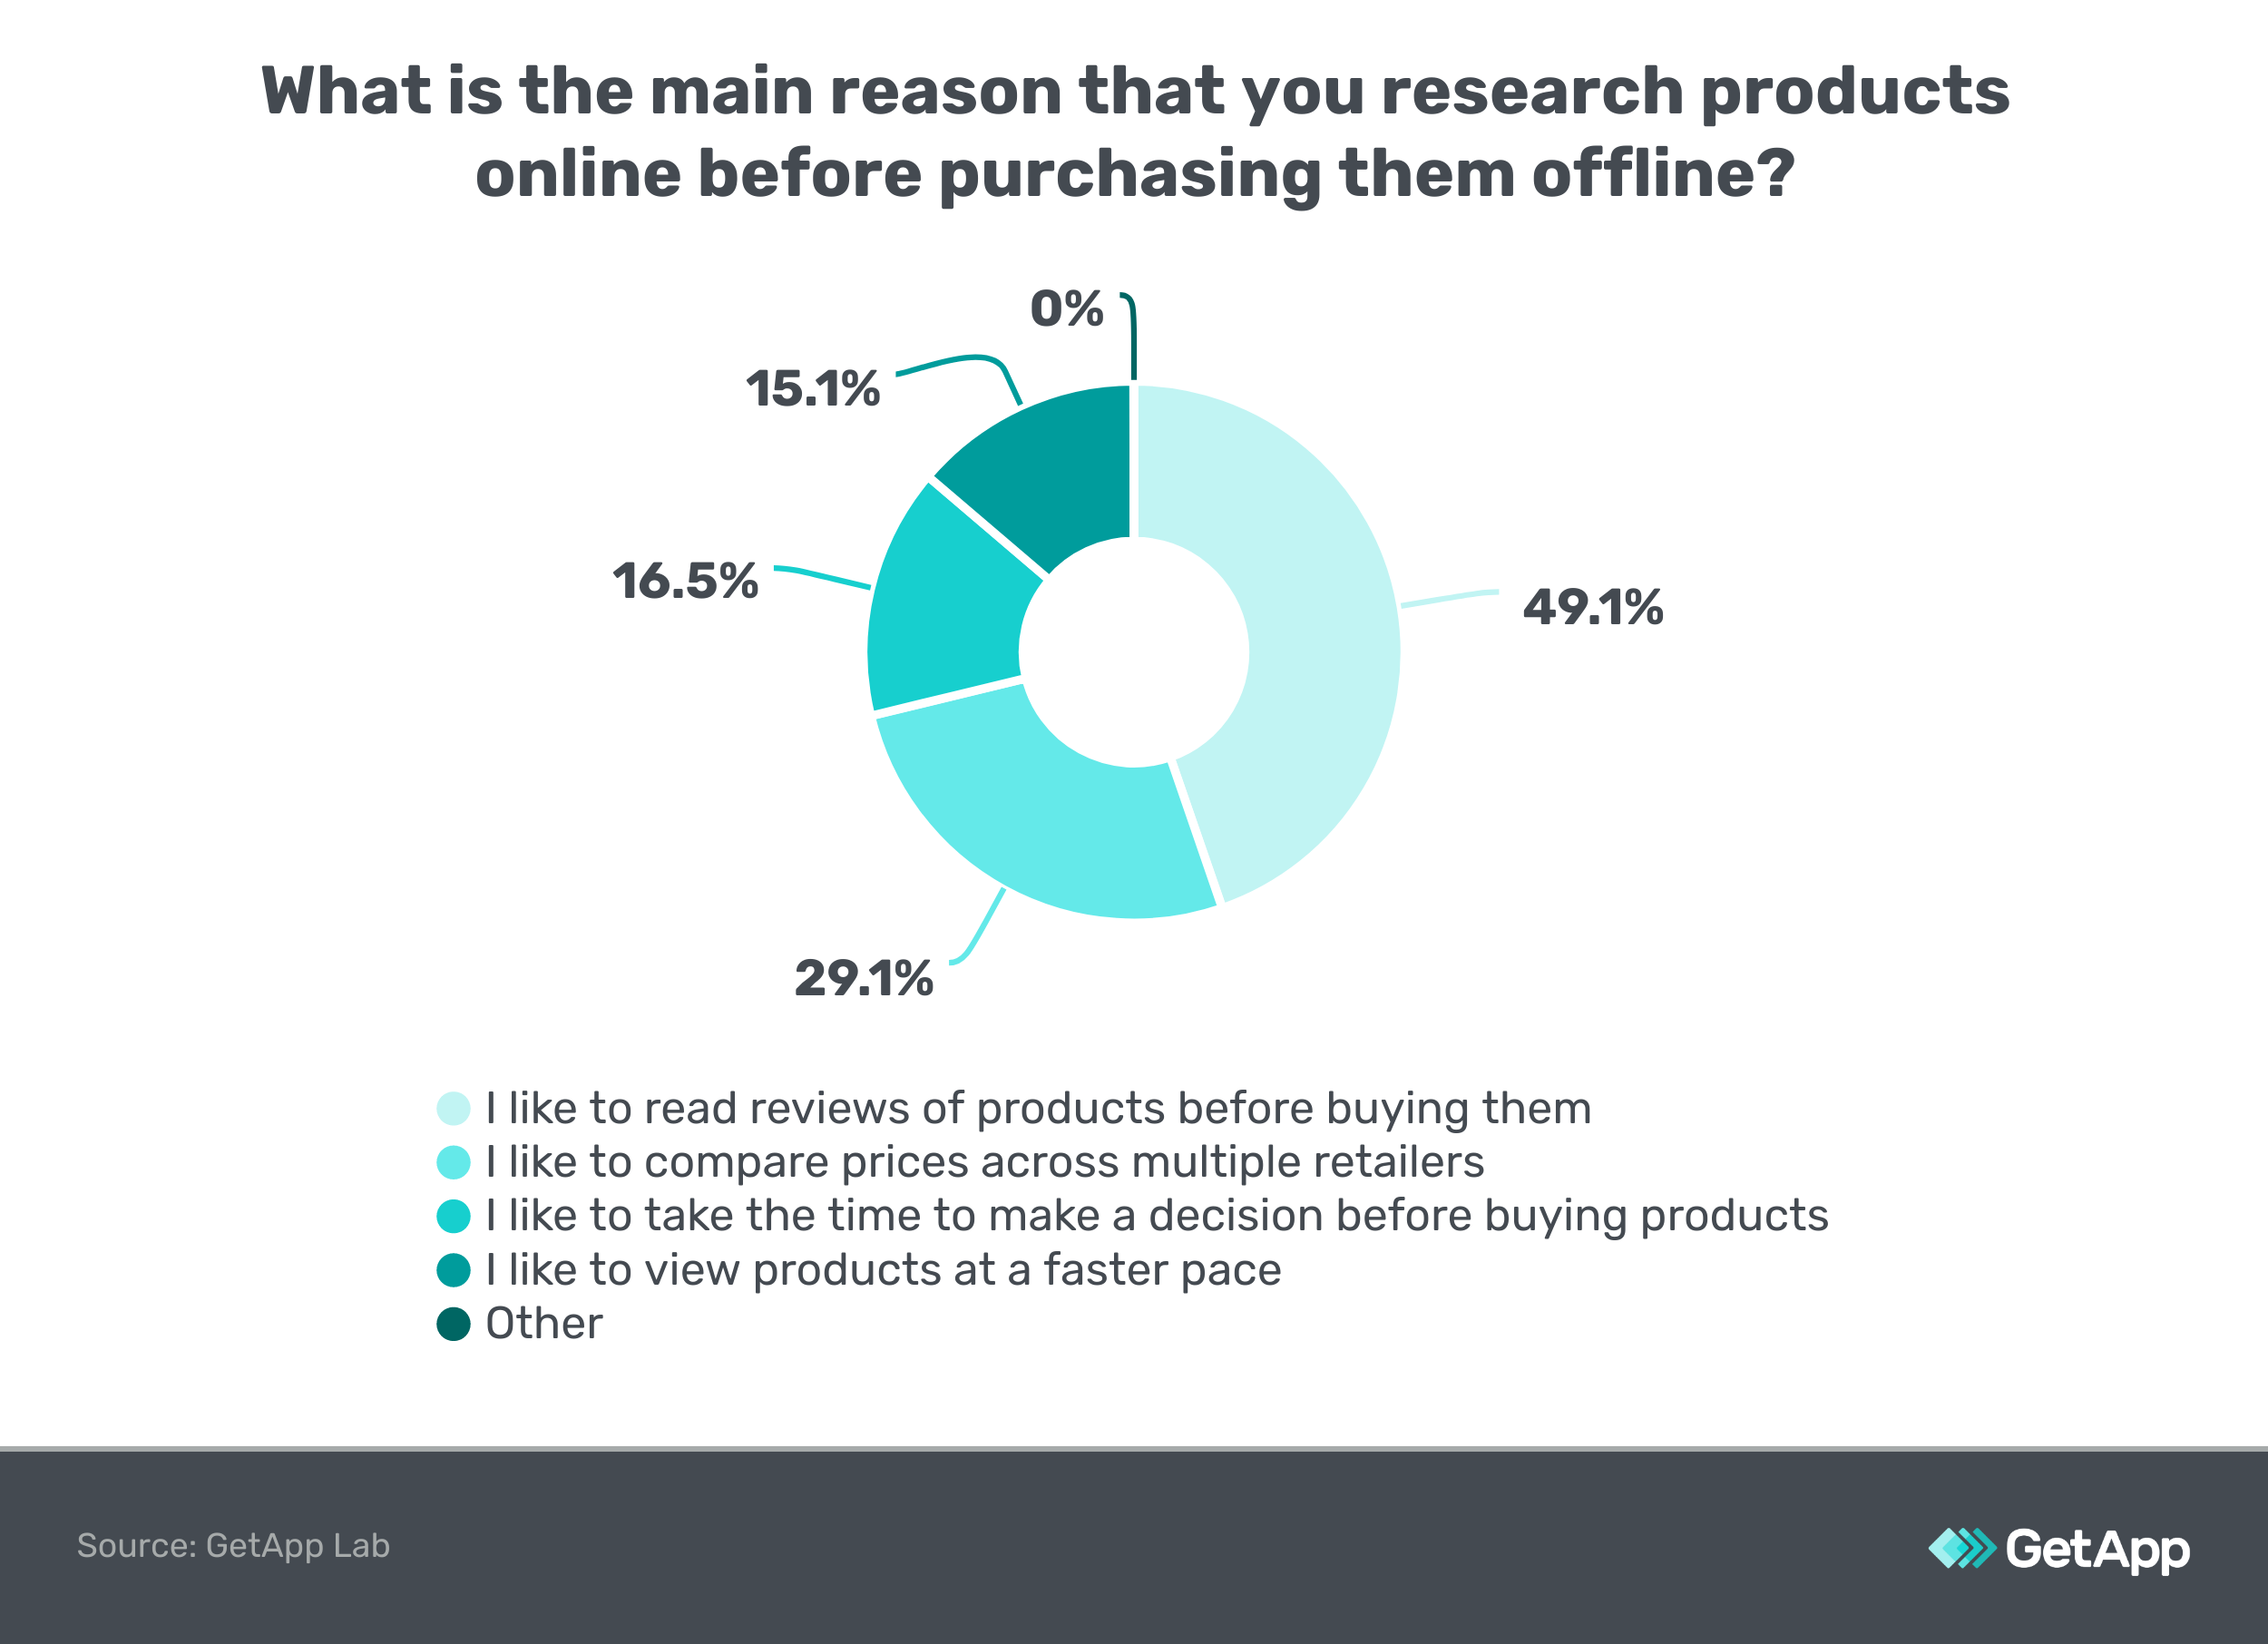 Chart: Why do you research products online before buying offline?